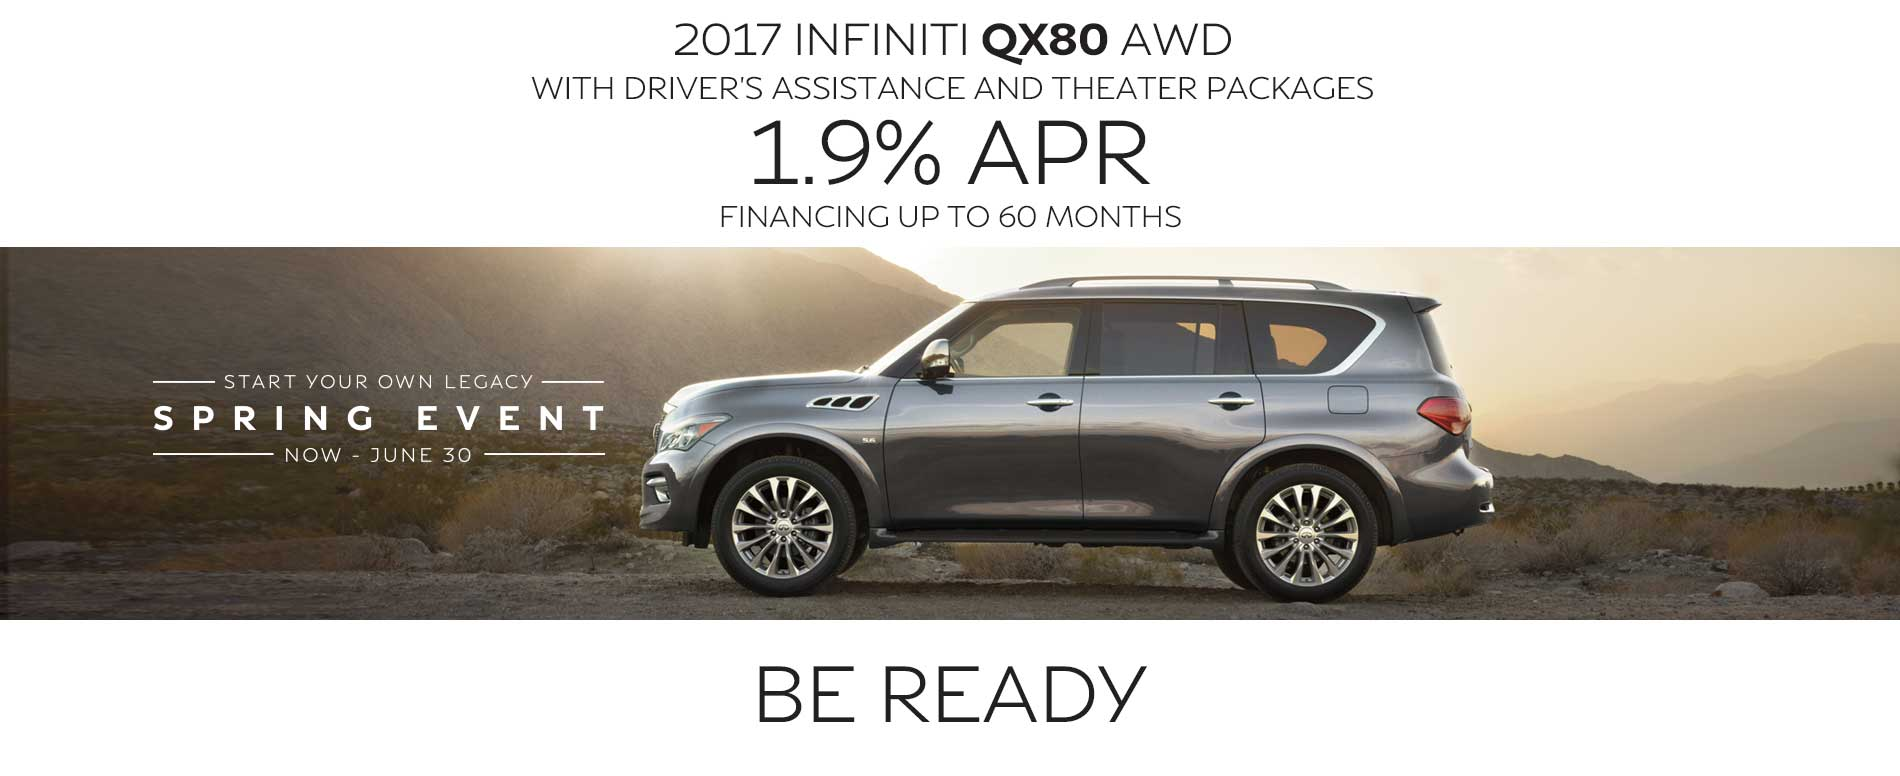 BE ready. Purchase a 2017 INFINITI QX80 with 1.9% APR financing up to 60 months.